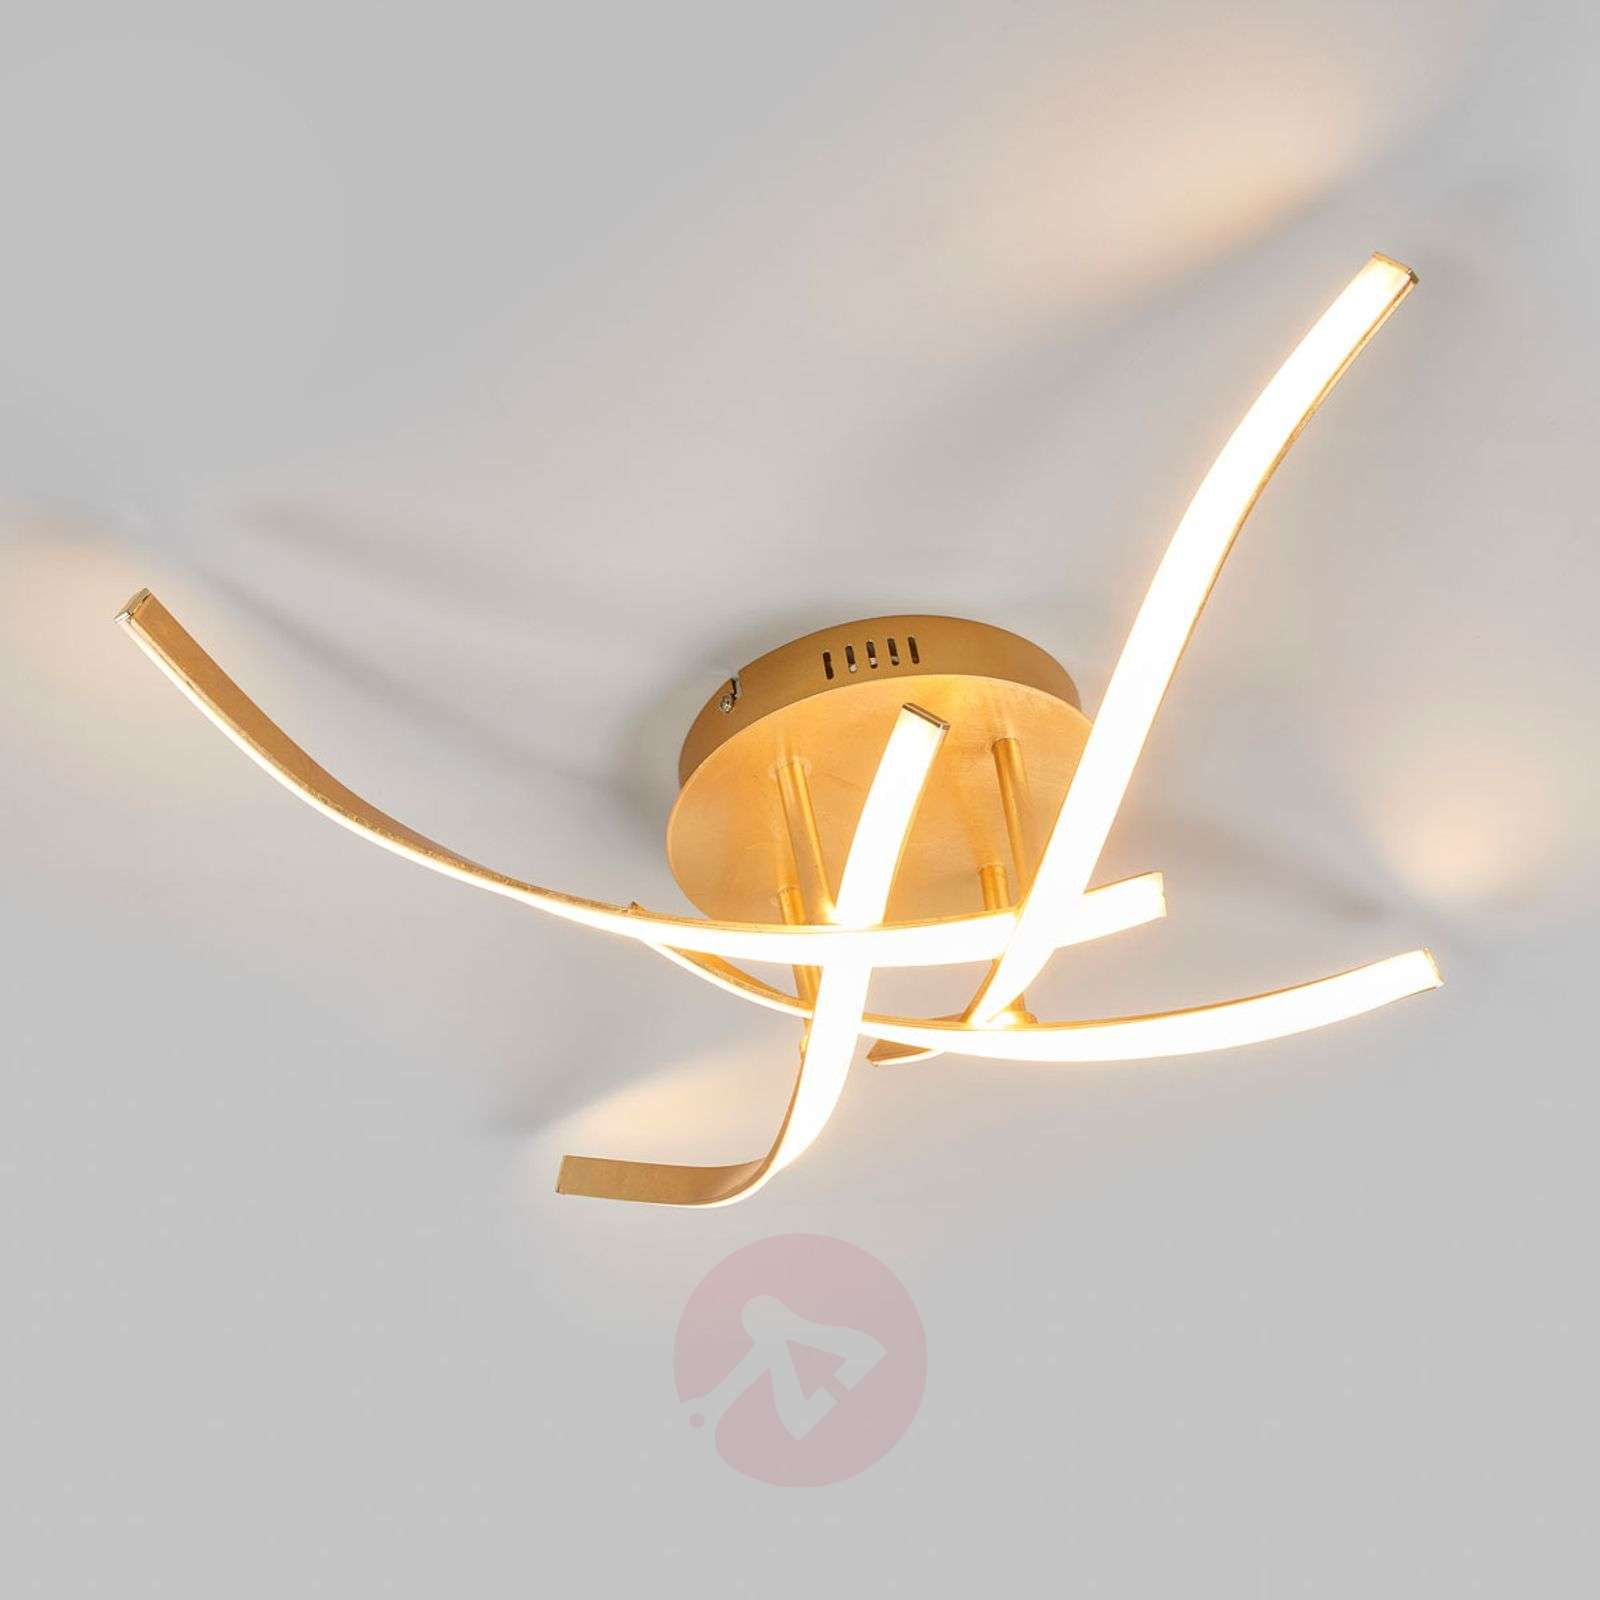 Milane dimmable LED ceiling light, golden-9985060-02